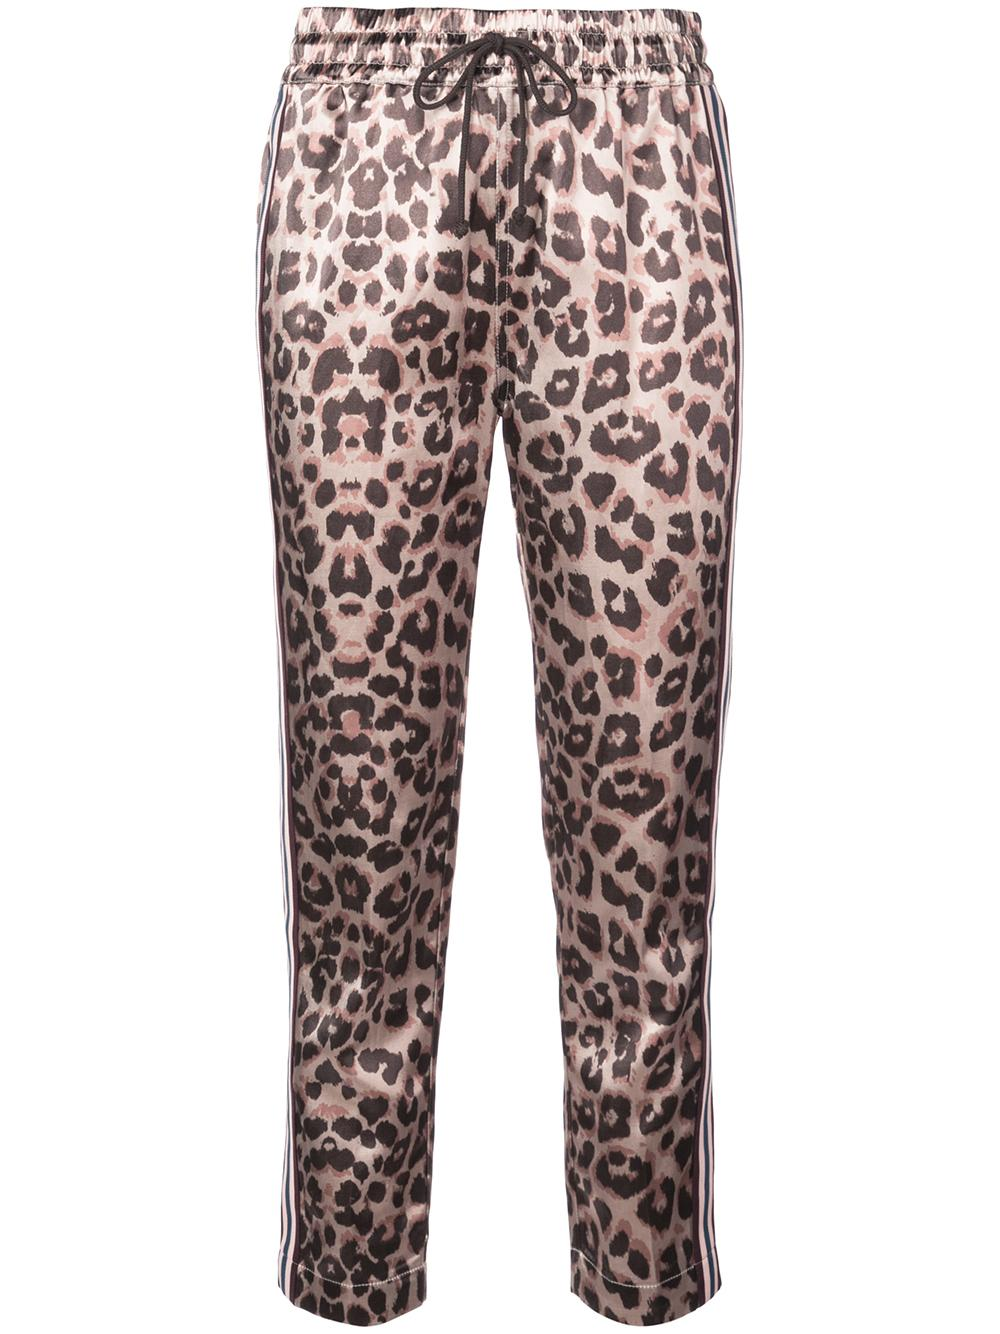 The Leopard Lounger Racer Ankle